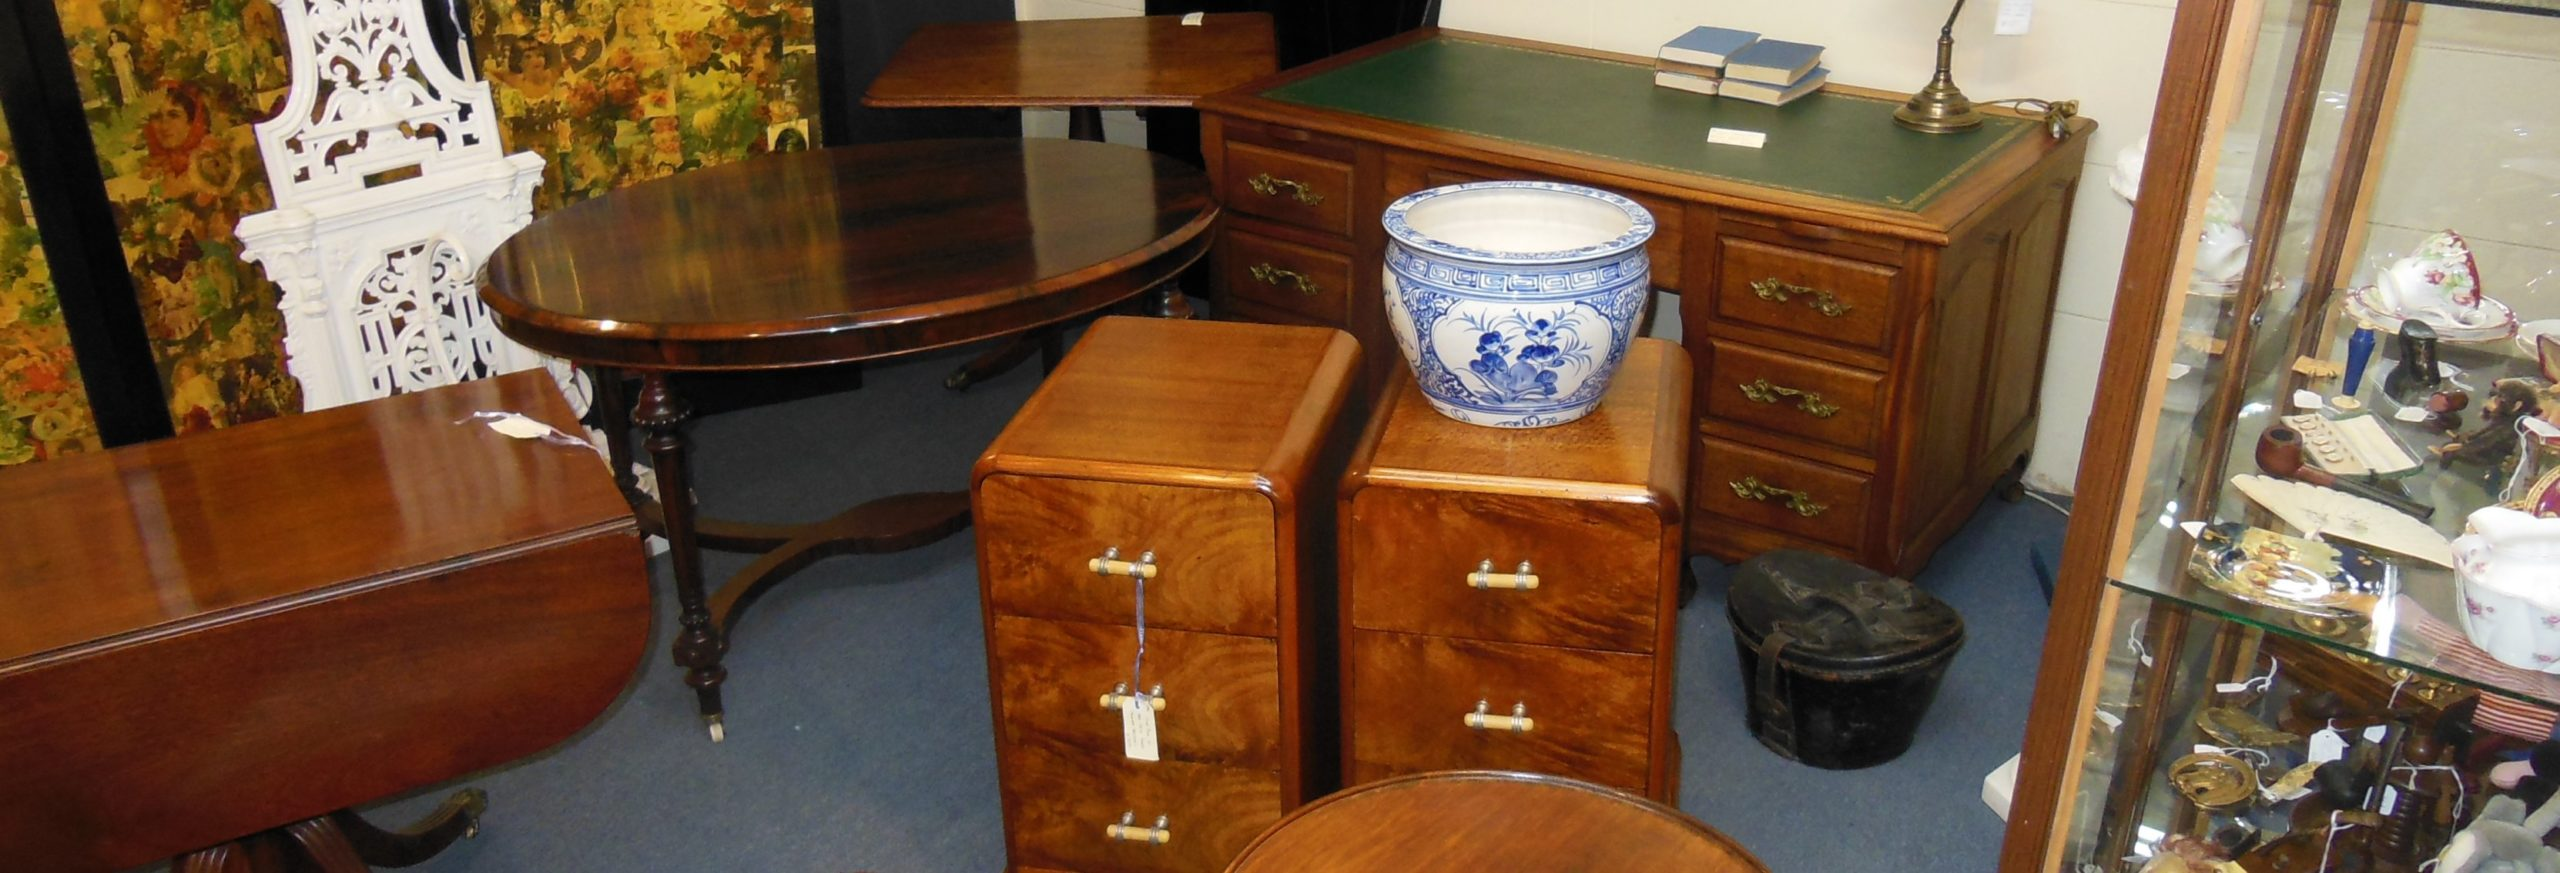 Camberwell-Antique-Centre-Furniture-Desk-Table-Pottery-scaled